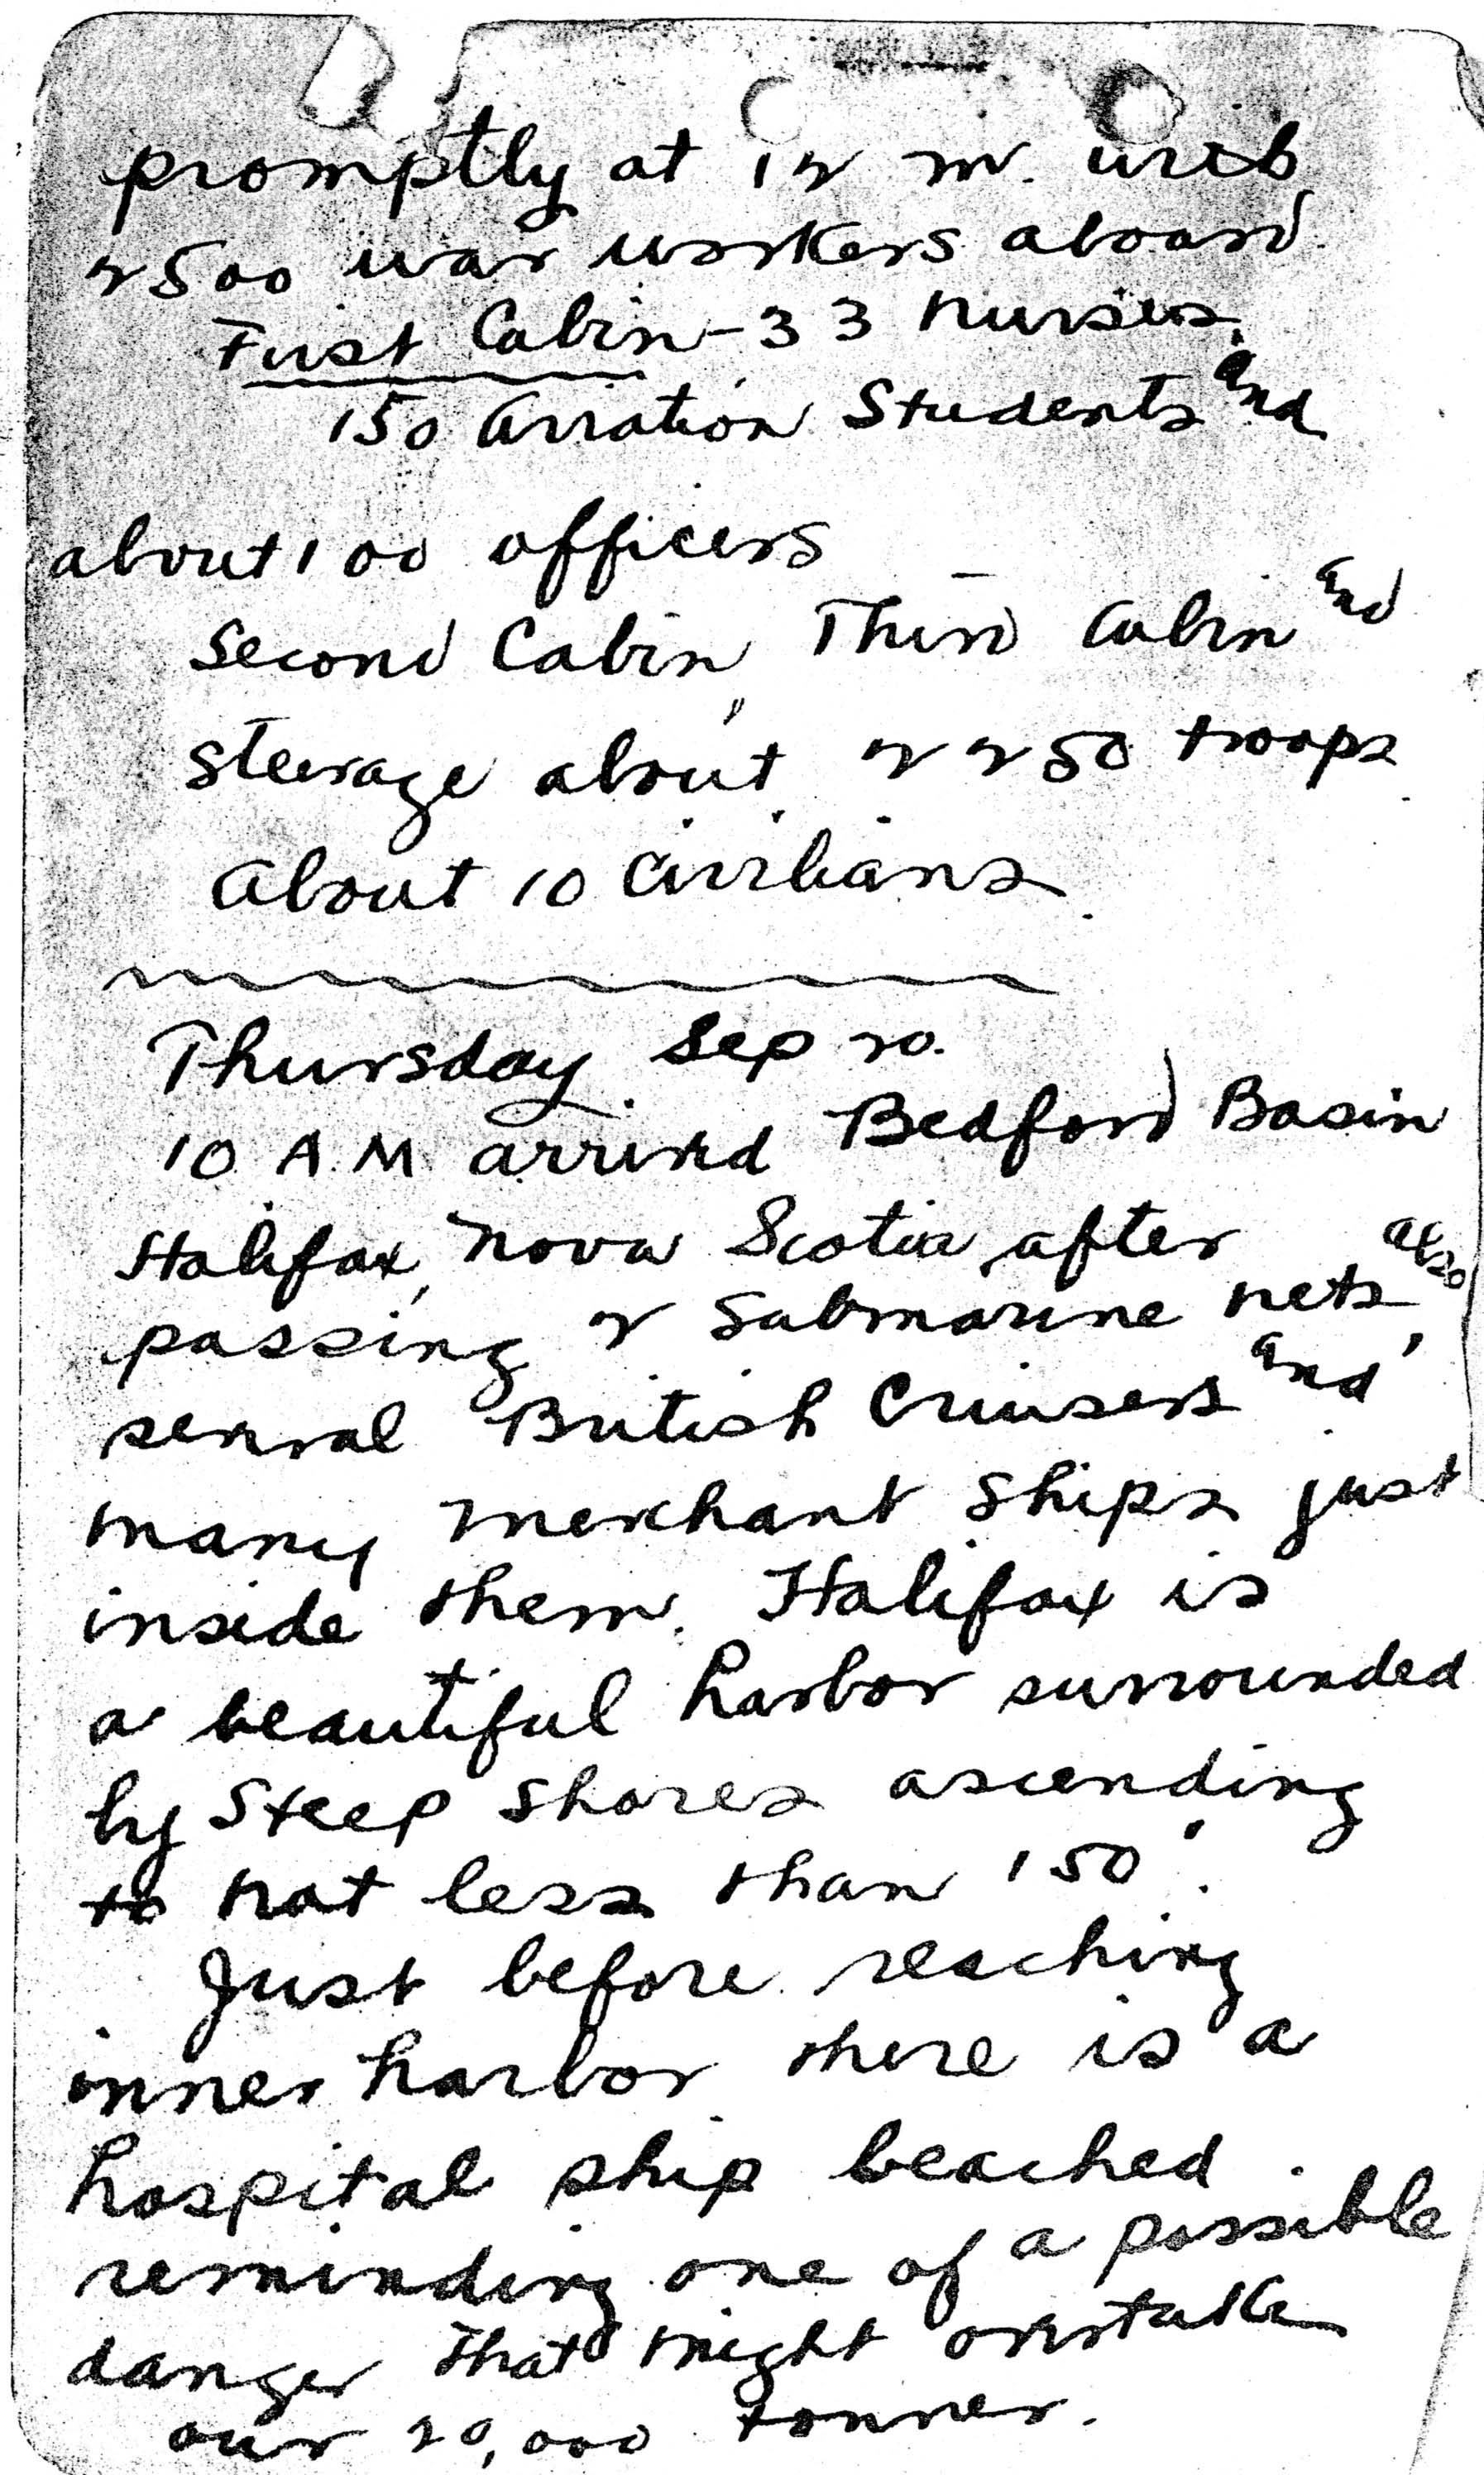 A handwritten page, the first page of Foss's diary that has been preserved.